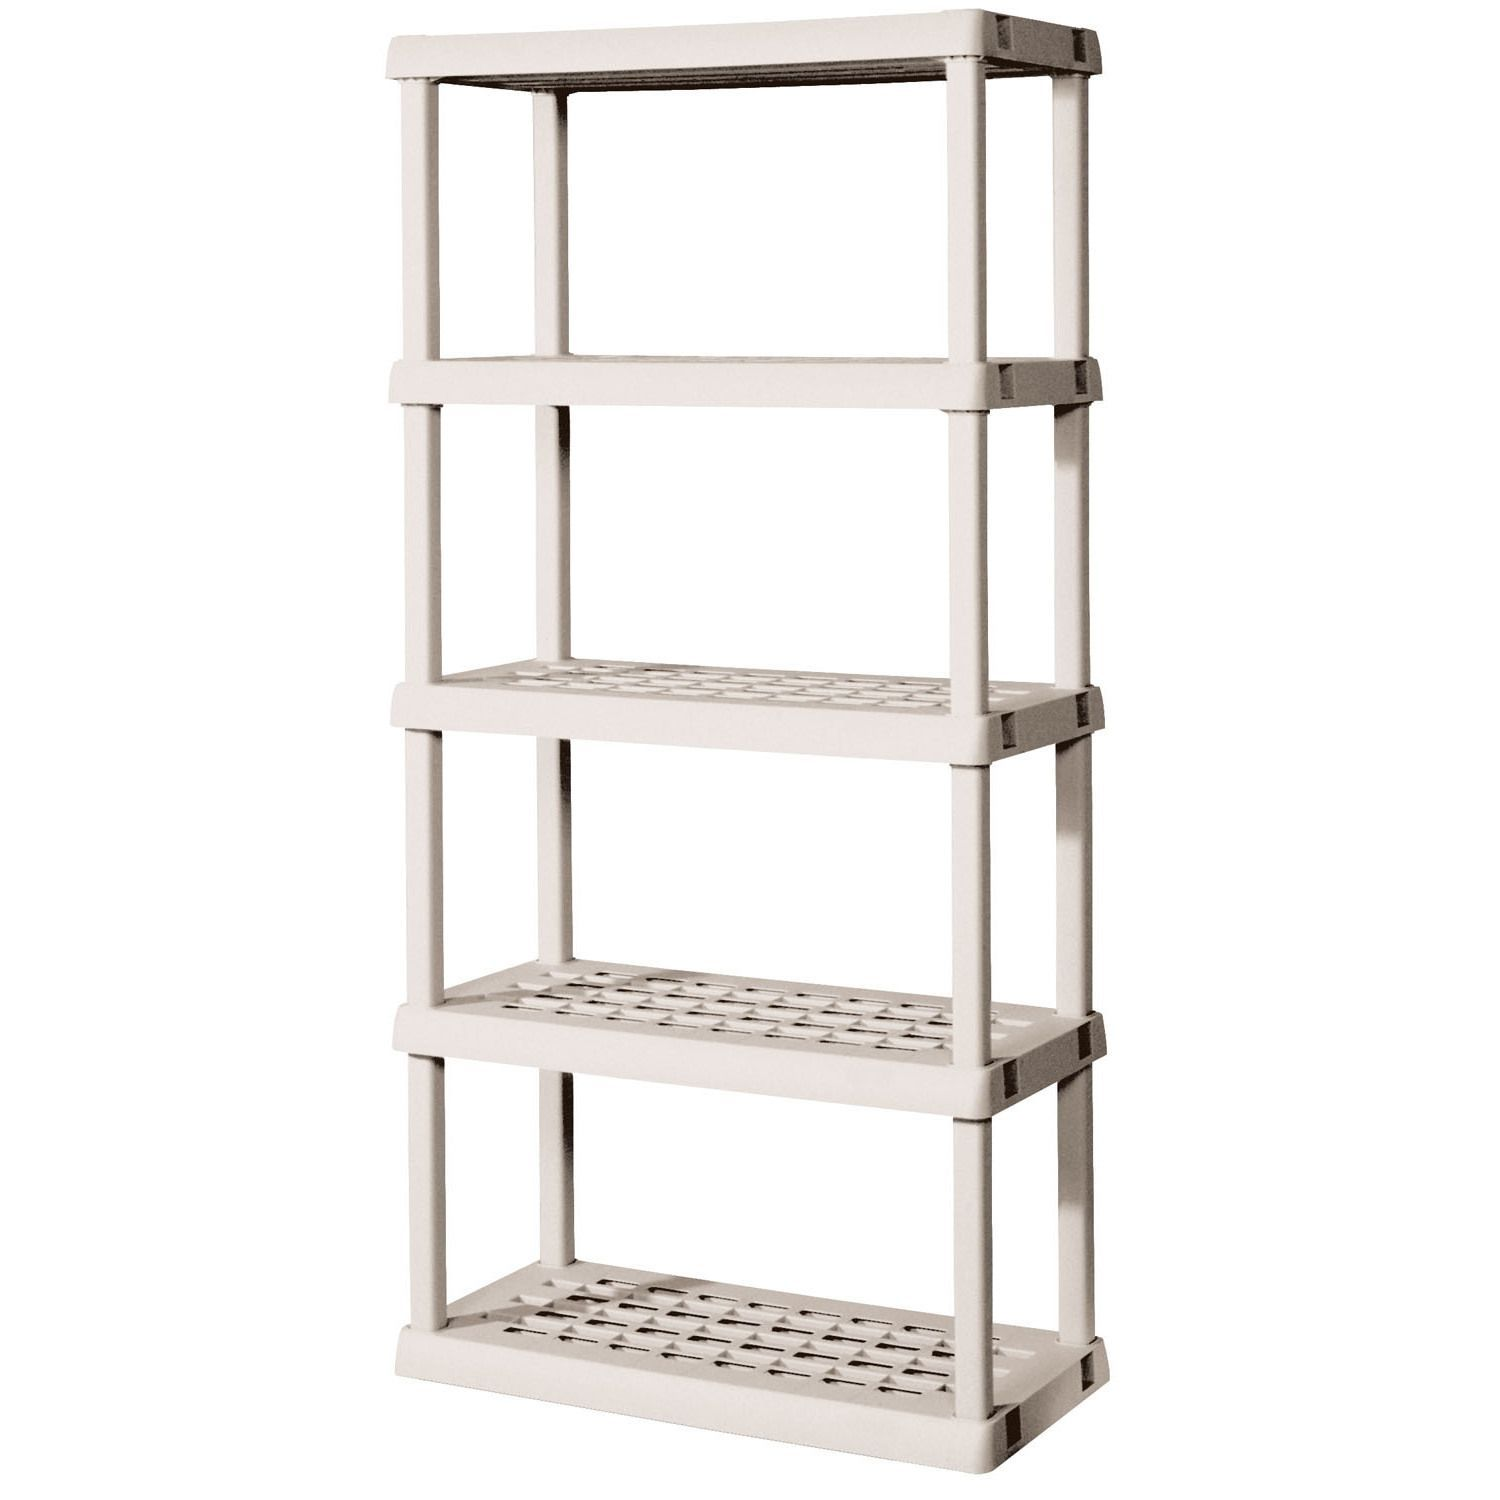 sterilite 01558501 5 shelf shelving unit hardware white platinum rh pinterest com